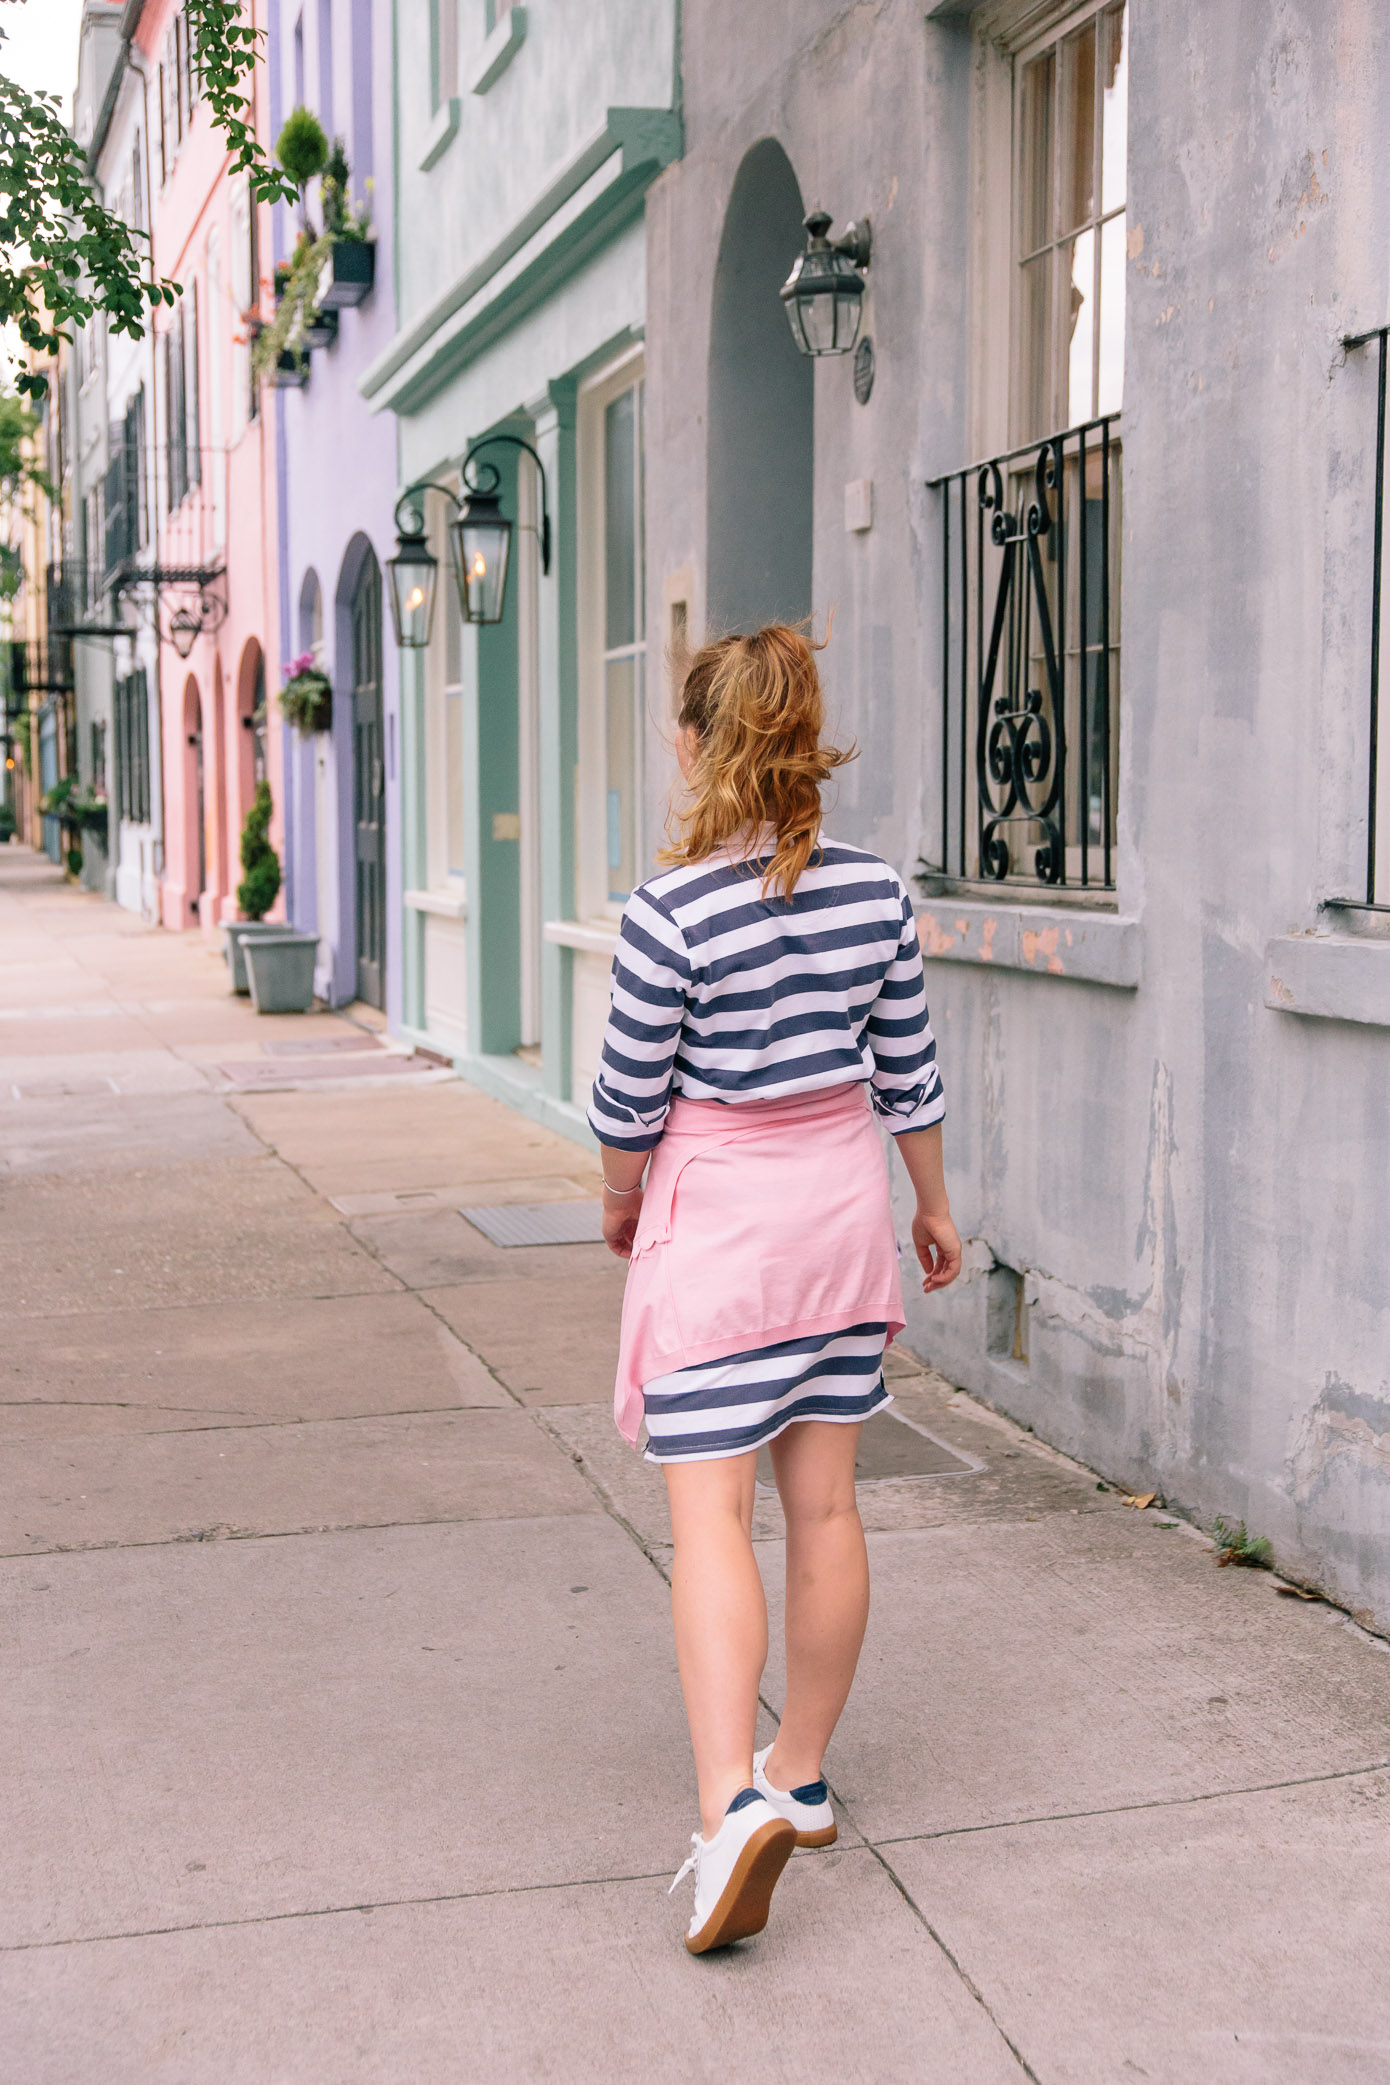 Striped Rugby Dress | Casual Spring to Summer Style | Louella Reese Life & Style Blog